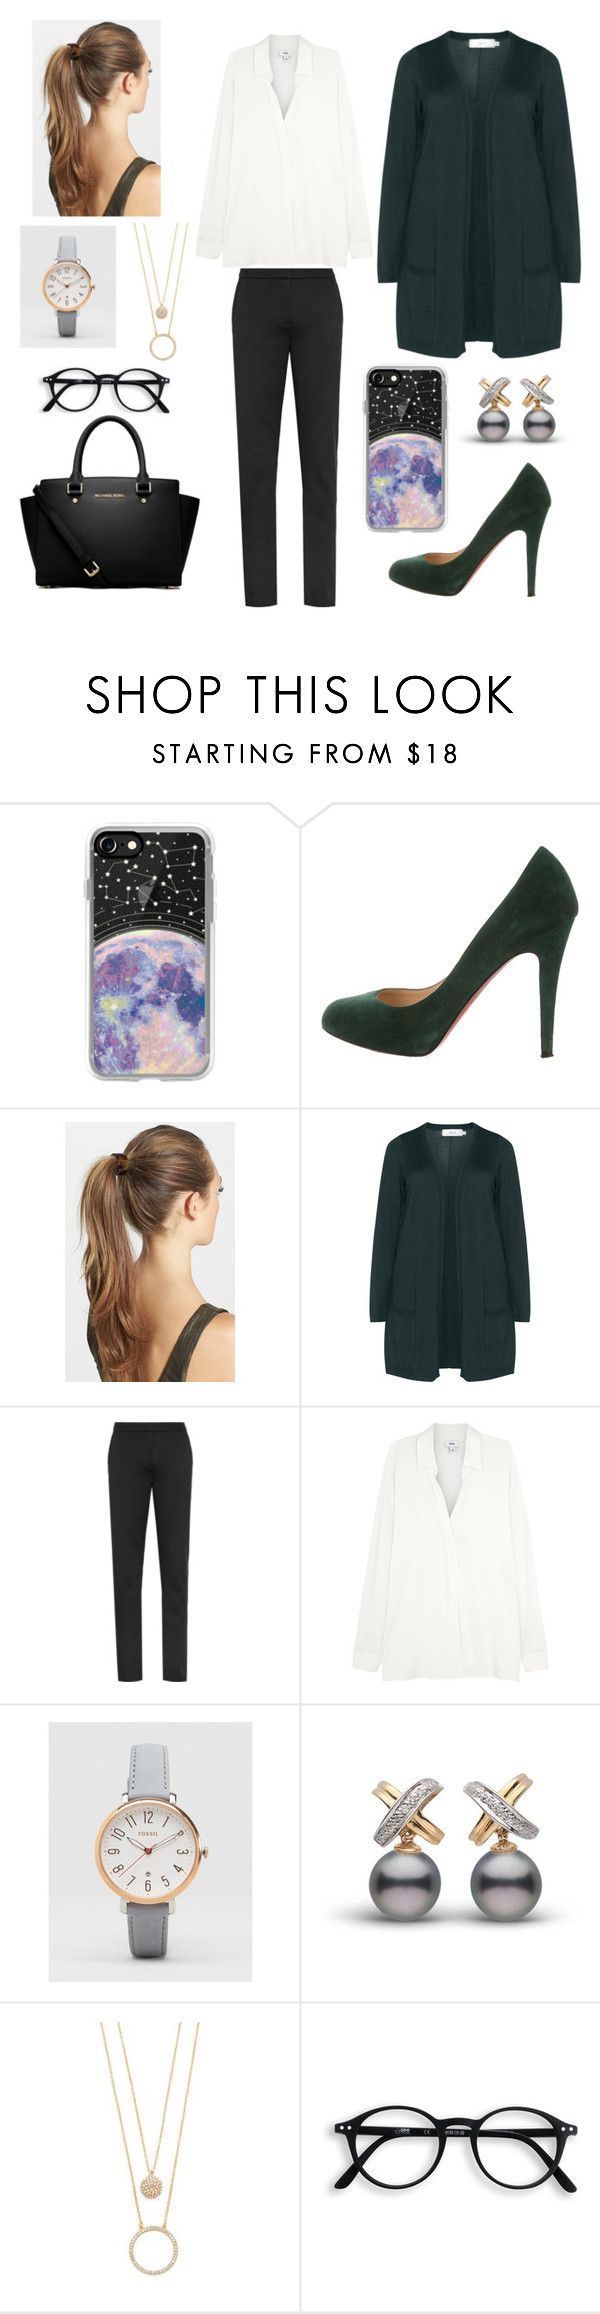 """""""Work"""" by luciannamax ❤ liked on Polyvore featuring Casetify, Christian Louboutin, France Luxe, Zizzi, Vince, FOSSIL, Kate Spade and MICHAEL Michael Kors"""